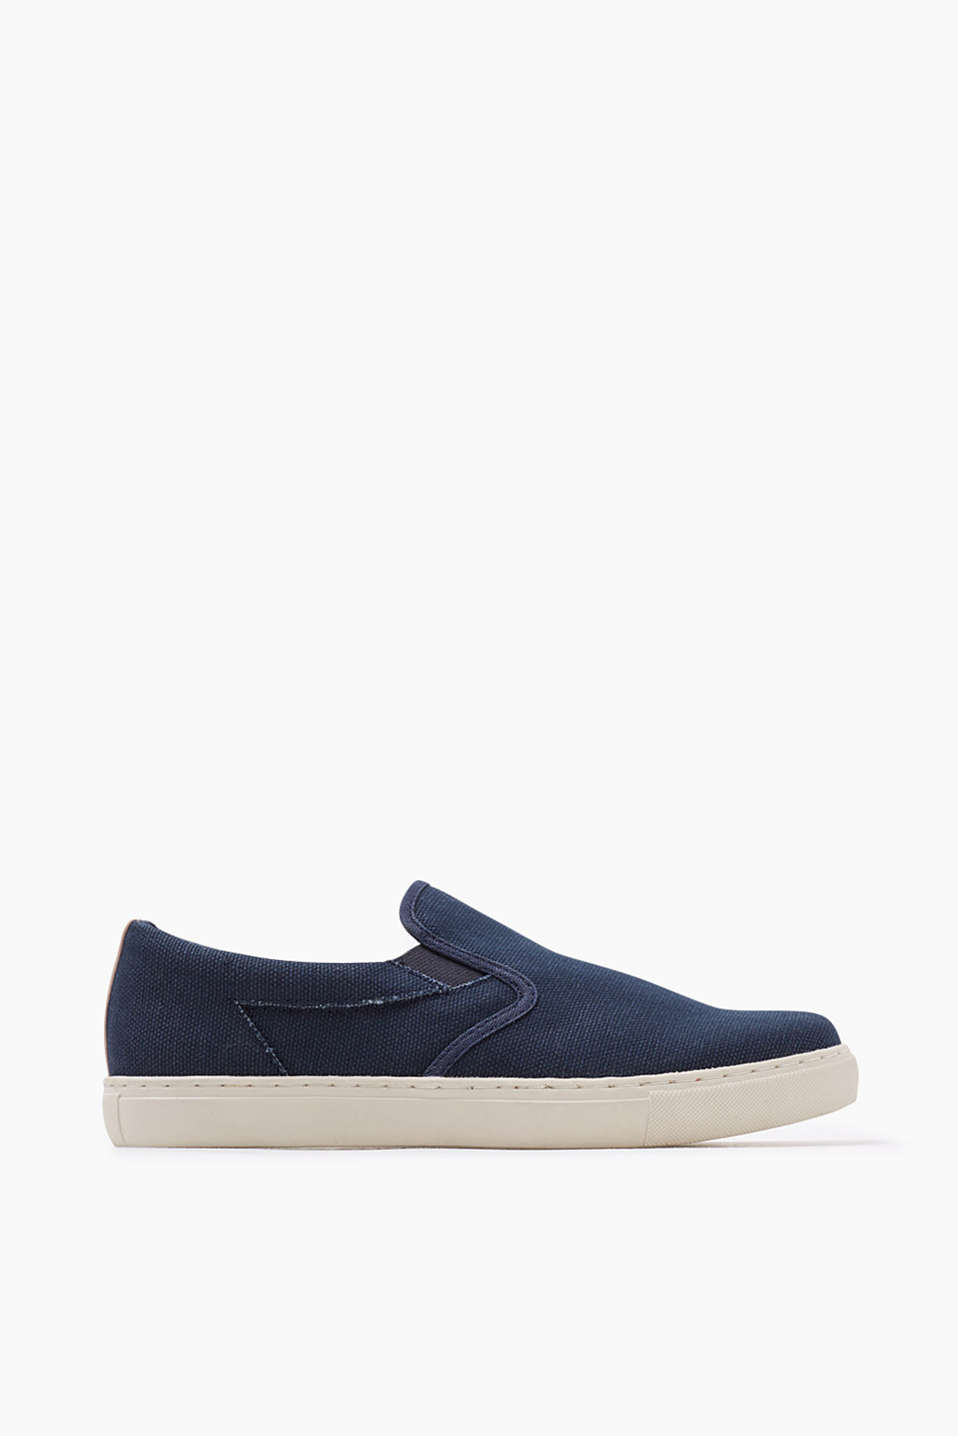 Easy to wear: Slip-On Sneaker aus Canvas